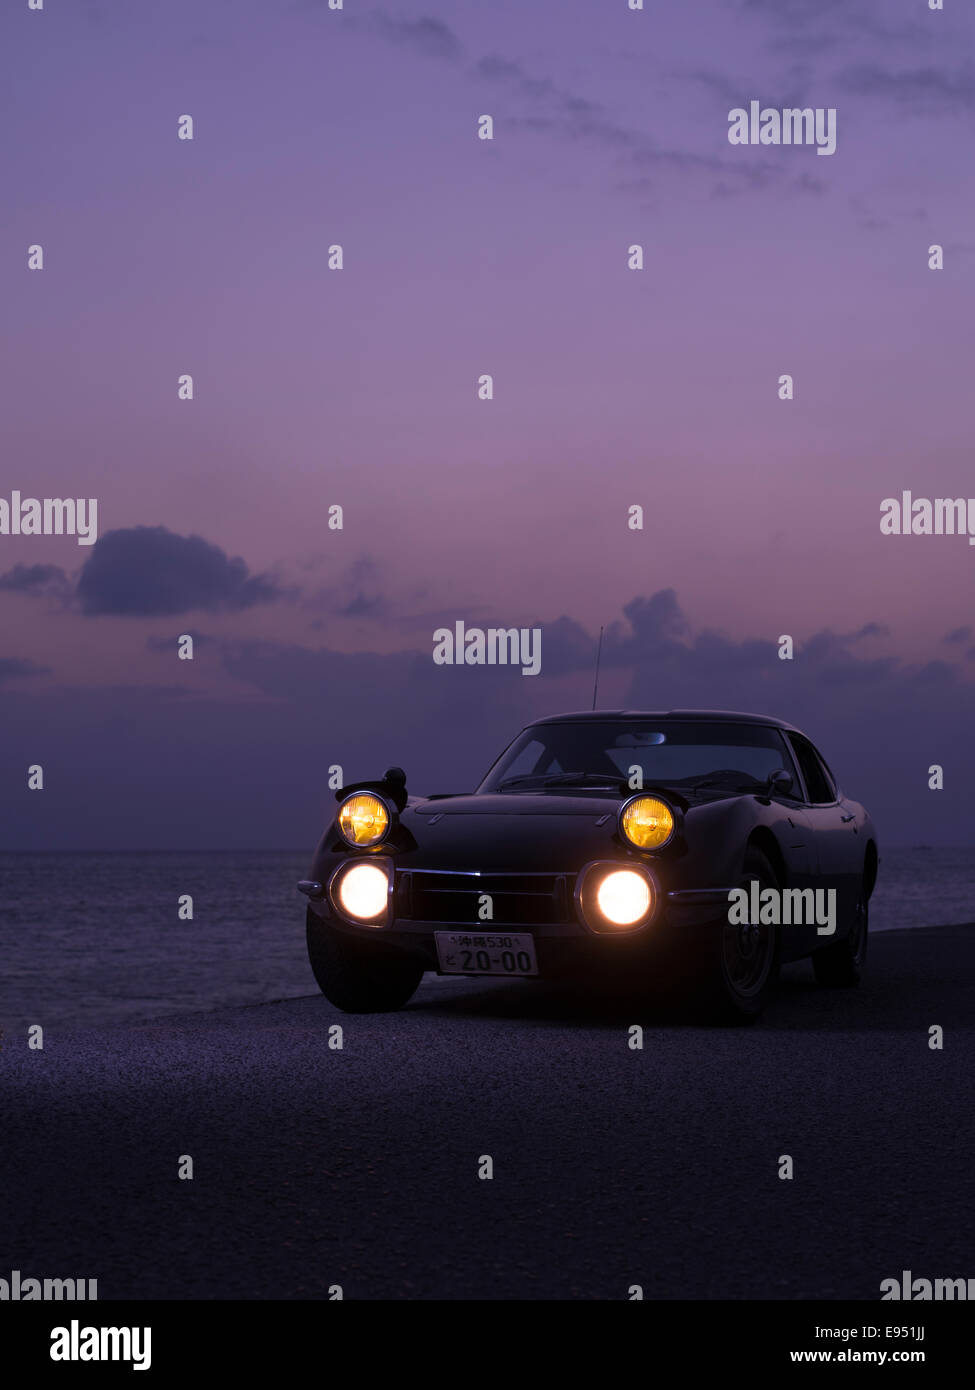 Rhd Toyota 2000gt Sports Car At Sunset In Okinawa Japan Extremely